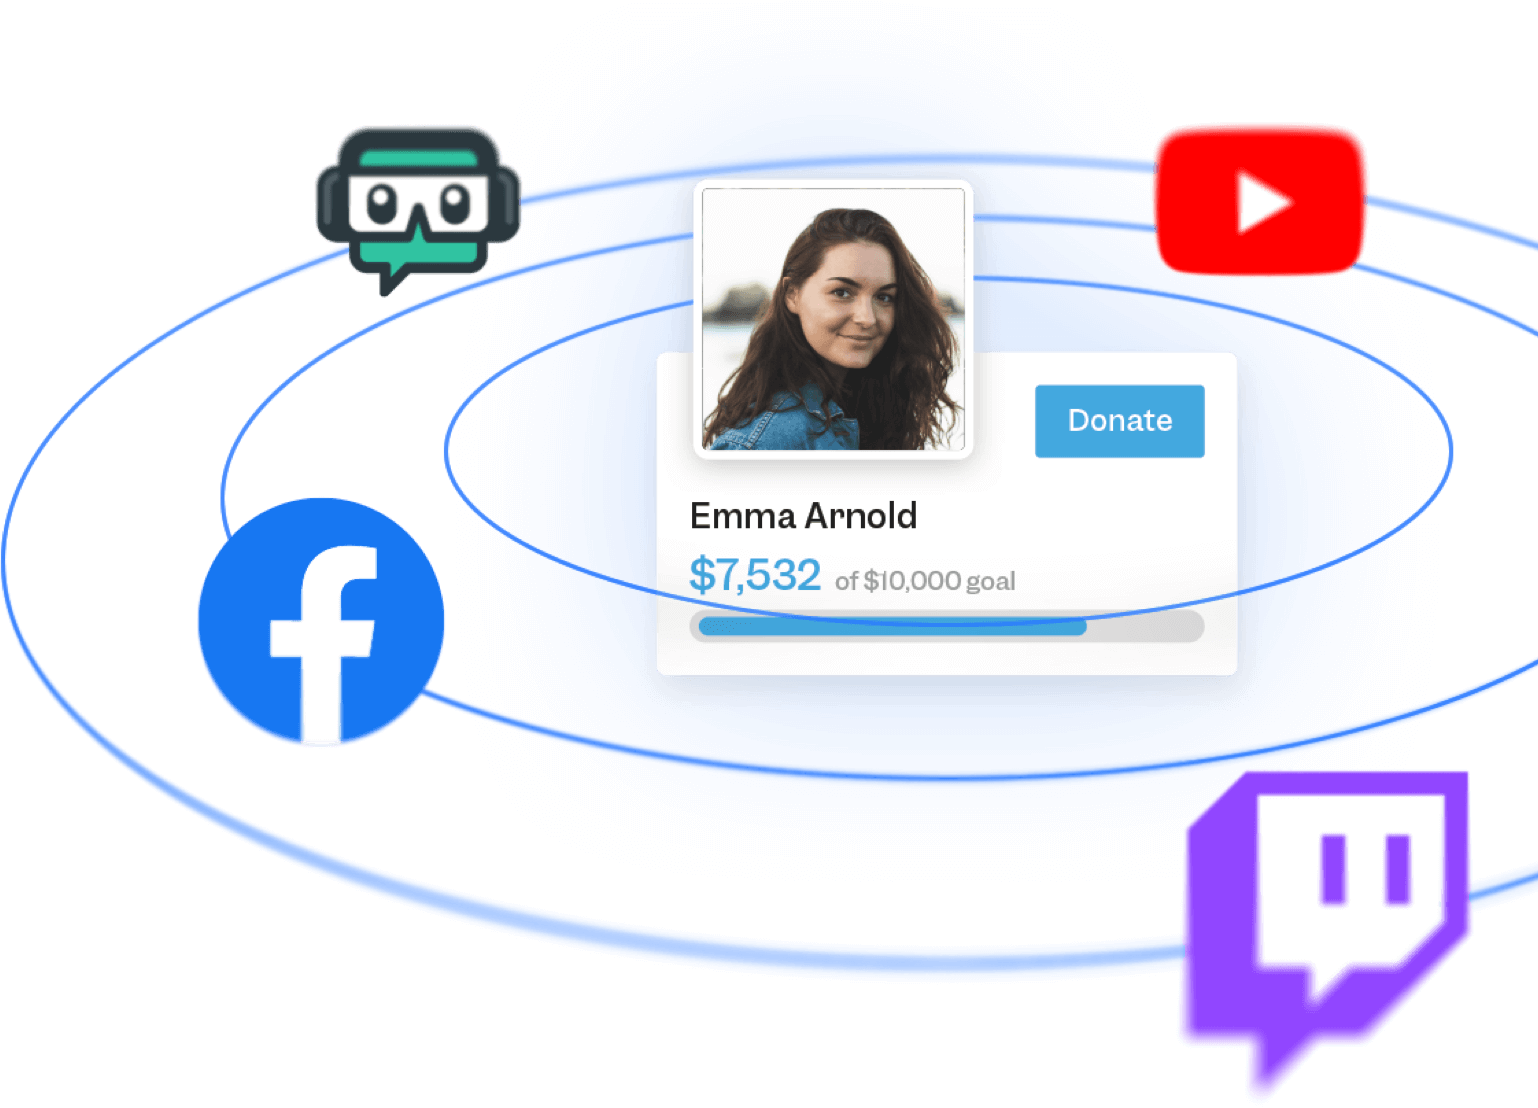 An image of a nonprofit supporter is surrounded by concentric circles with social media icons for Facebook, Twitch, YouTube and Streamlabs, with a fundraising progress bar and her name below her image.